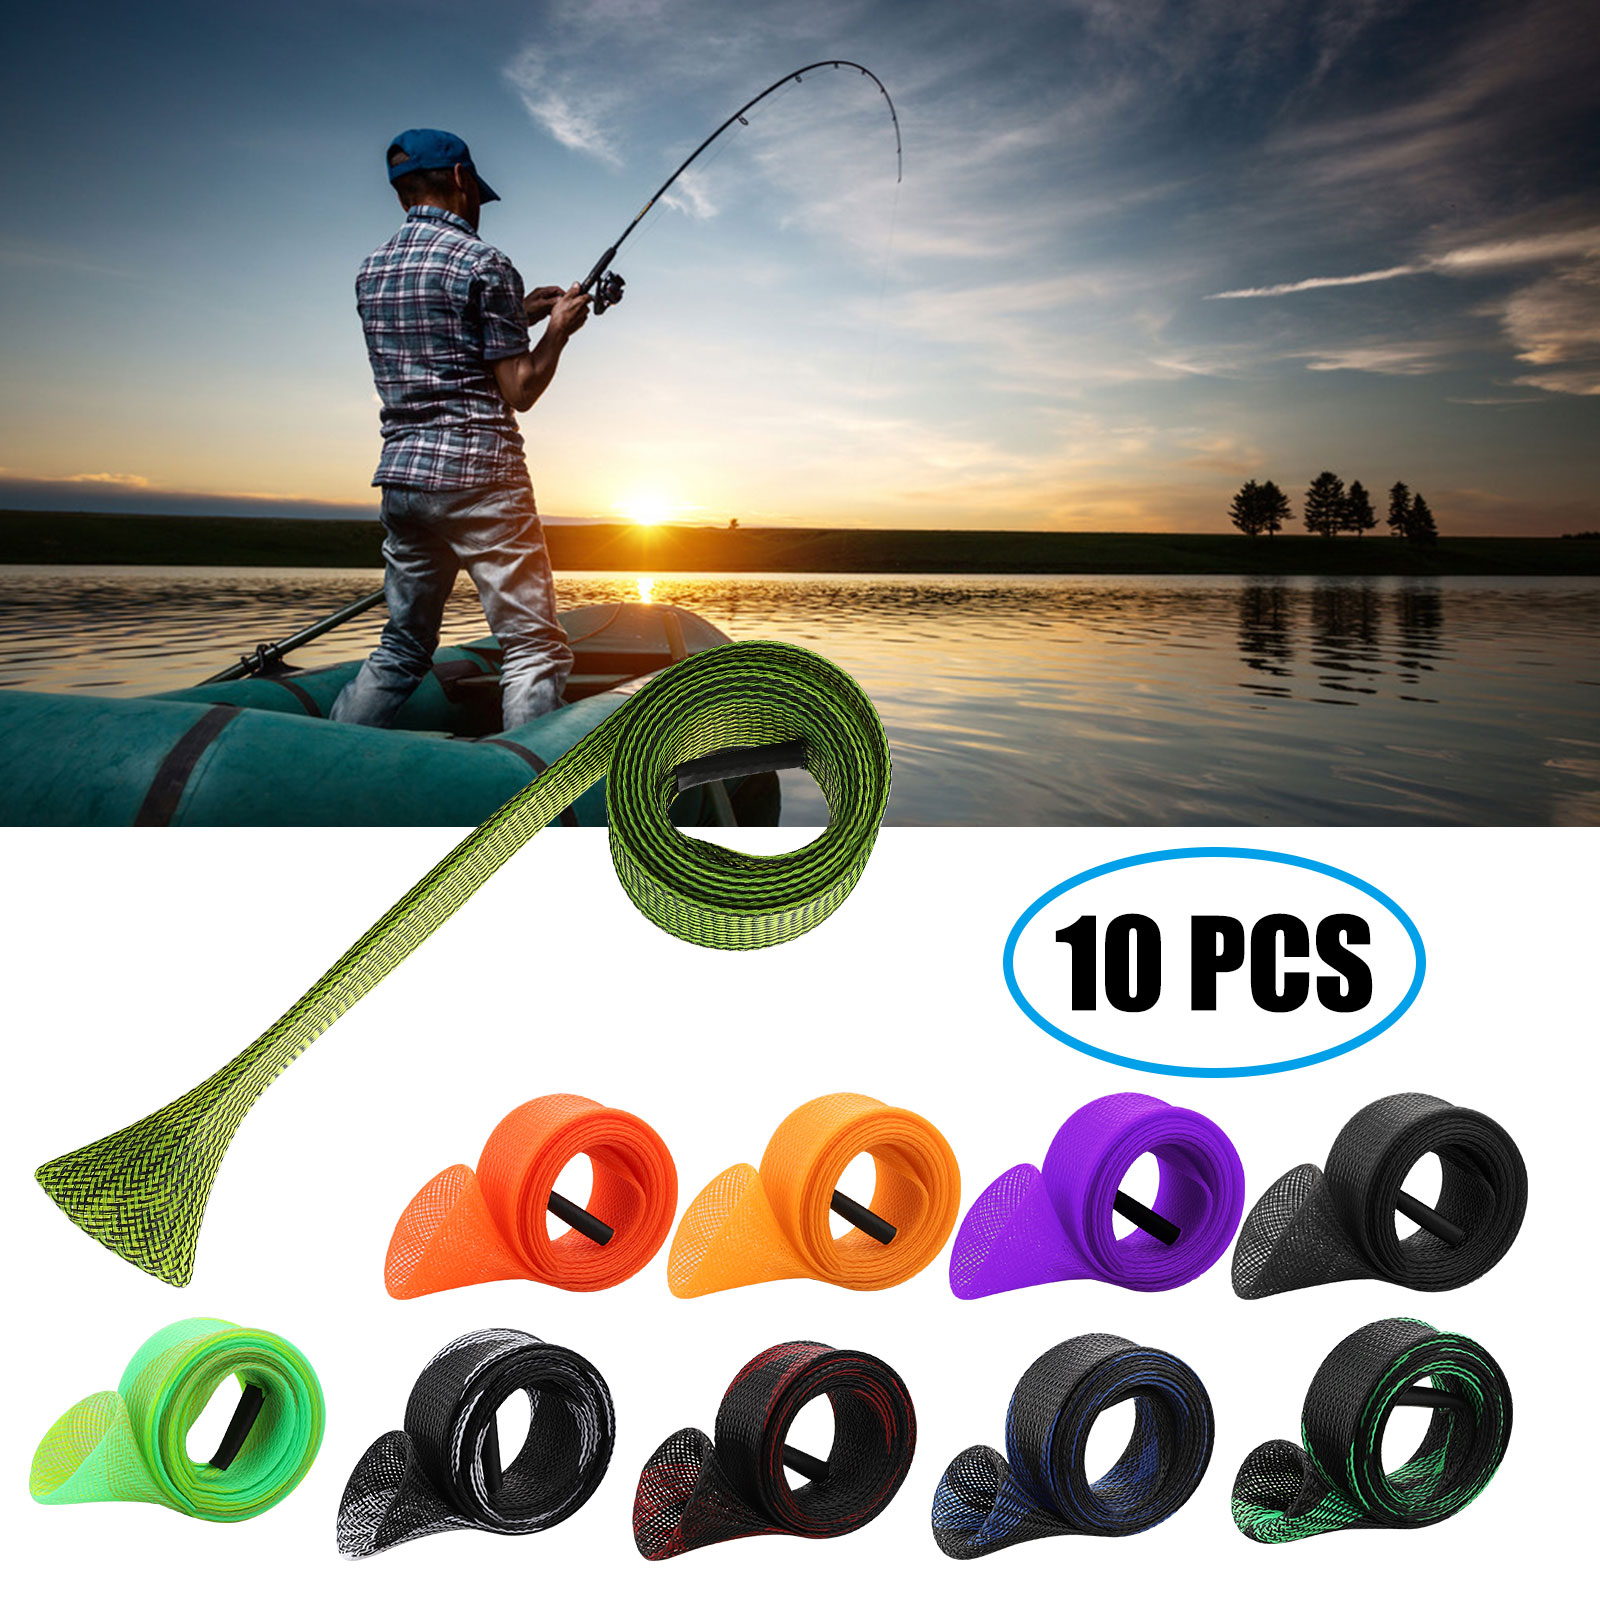 1-10x Spinning Casting Fishing Rod Sleeve Cover Pole Tip Protector Bag Tube Case